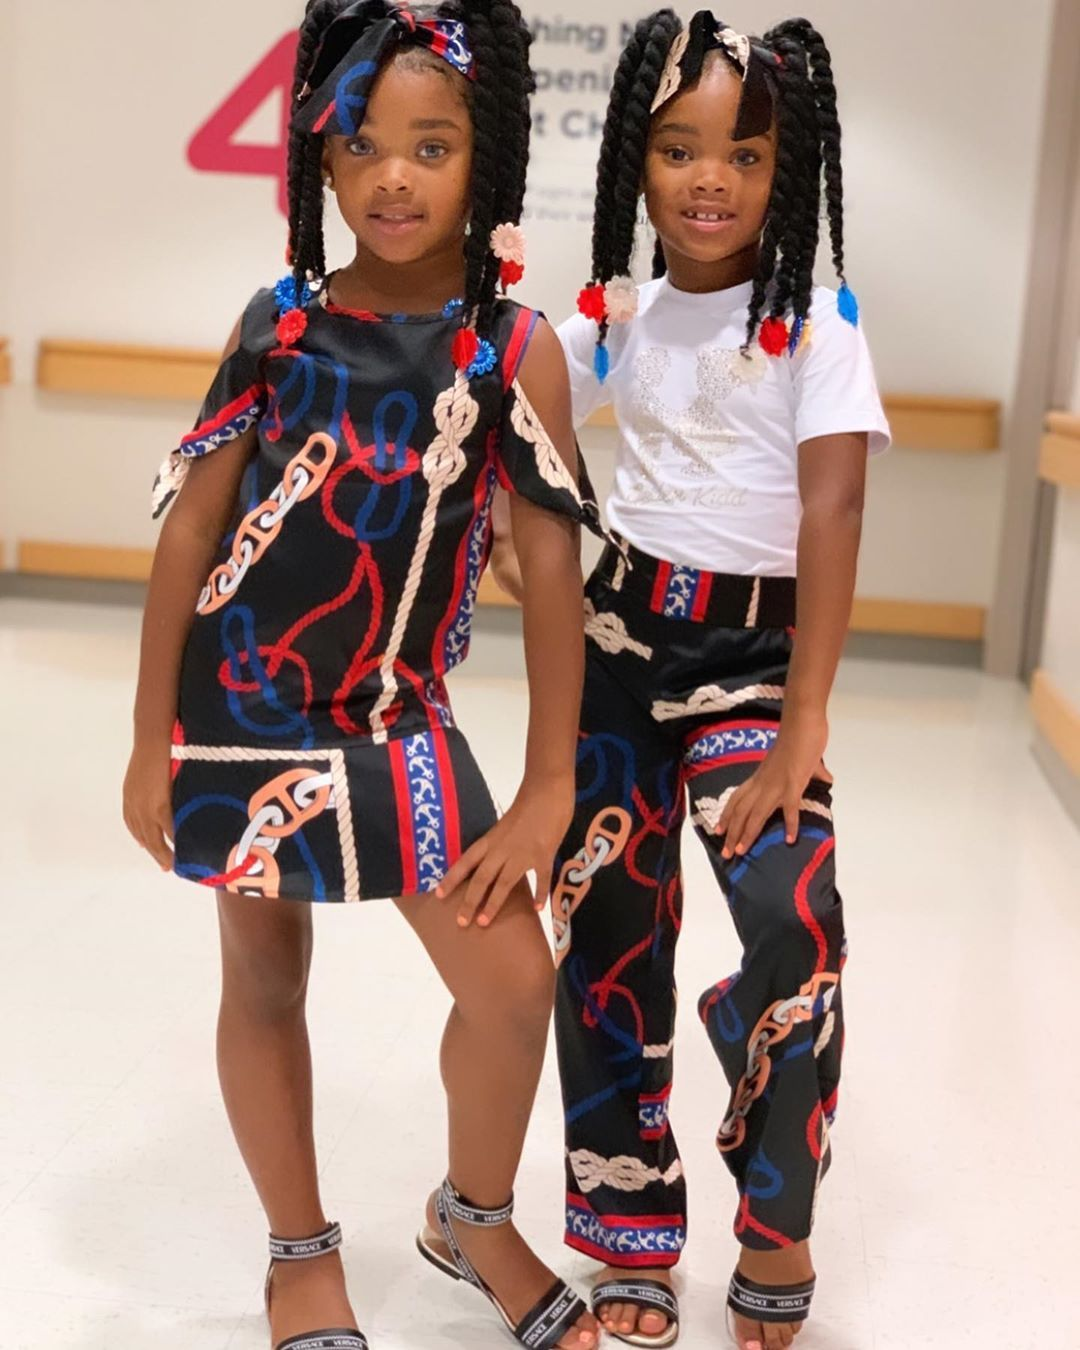 Weekend Vibes Follow This 10yr Old Kidprenuer Marleycg Outfit Goldenkiddnyc 10 Cod Kids Outfits Daughters Cute Girl Outfits Mommy Daughter Outfits